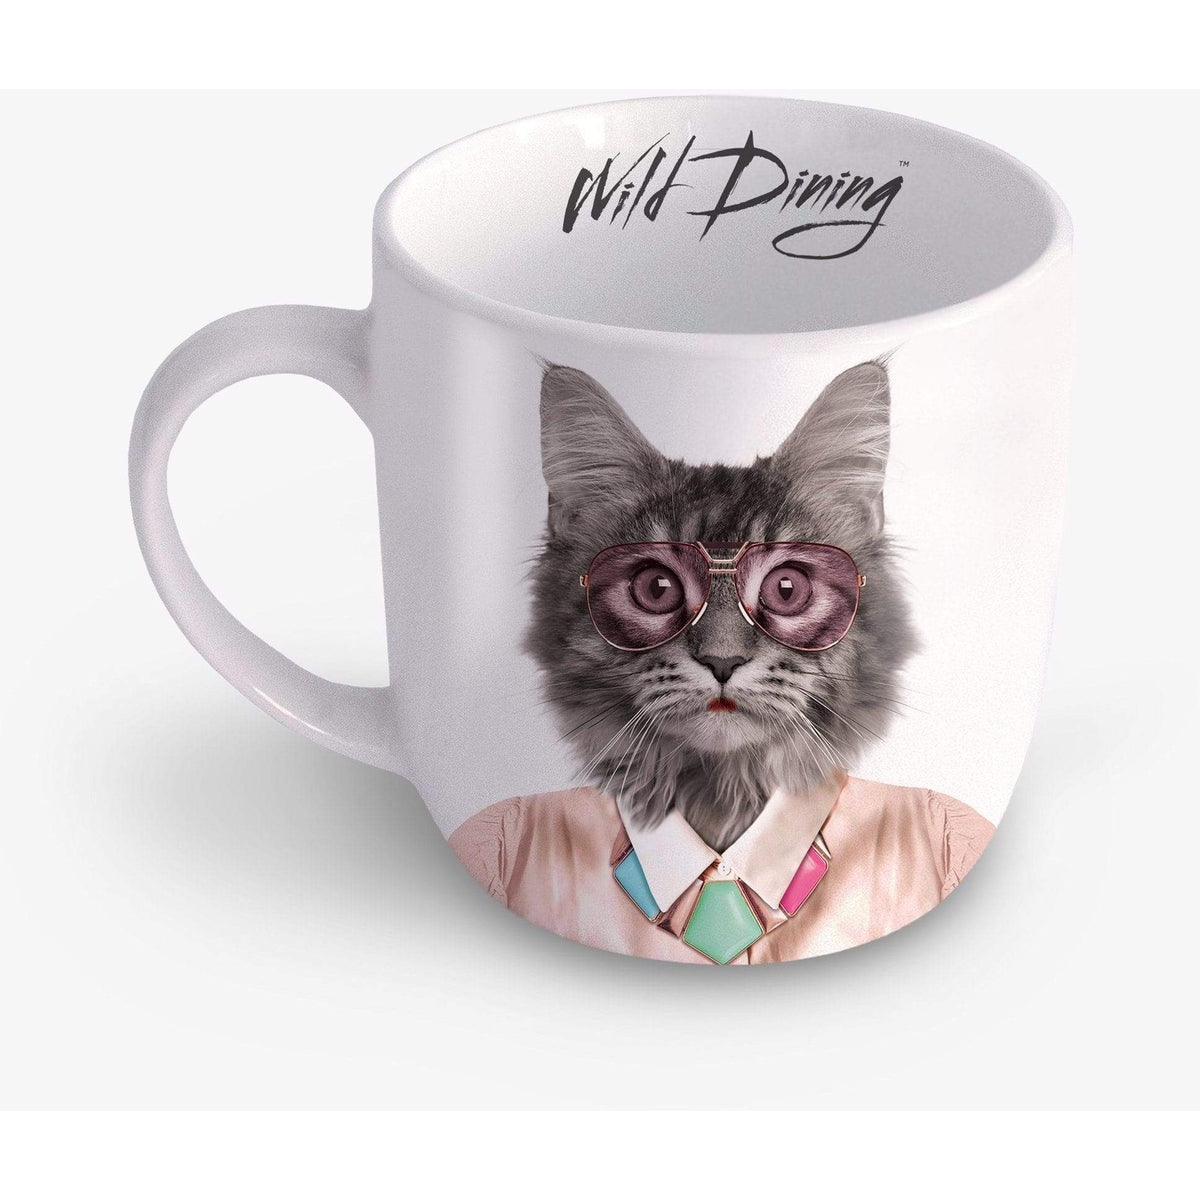 Wild Dining Ceramic Mug - Courtney Cat